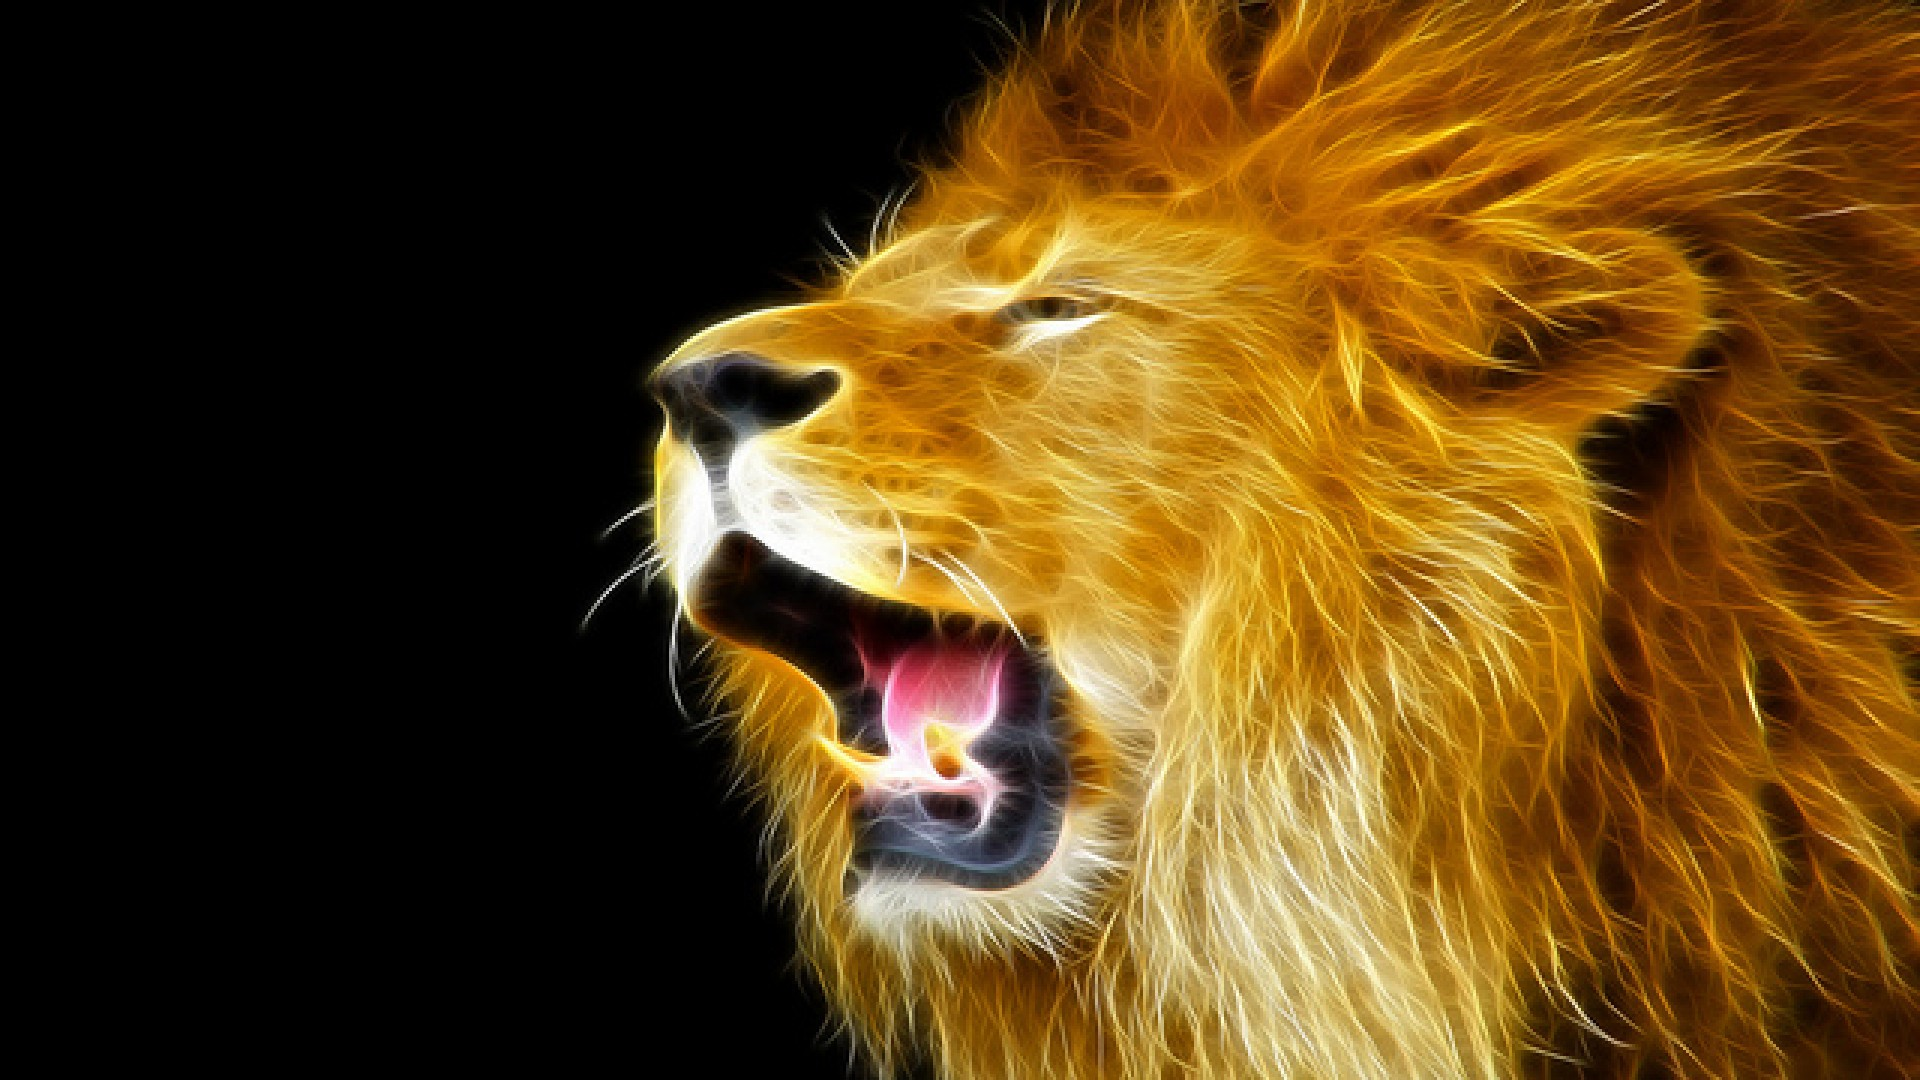 Amazing Wallpaper Logo Lion - Lion-Wallpaper-1920x1080  Collection_784129.jpg